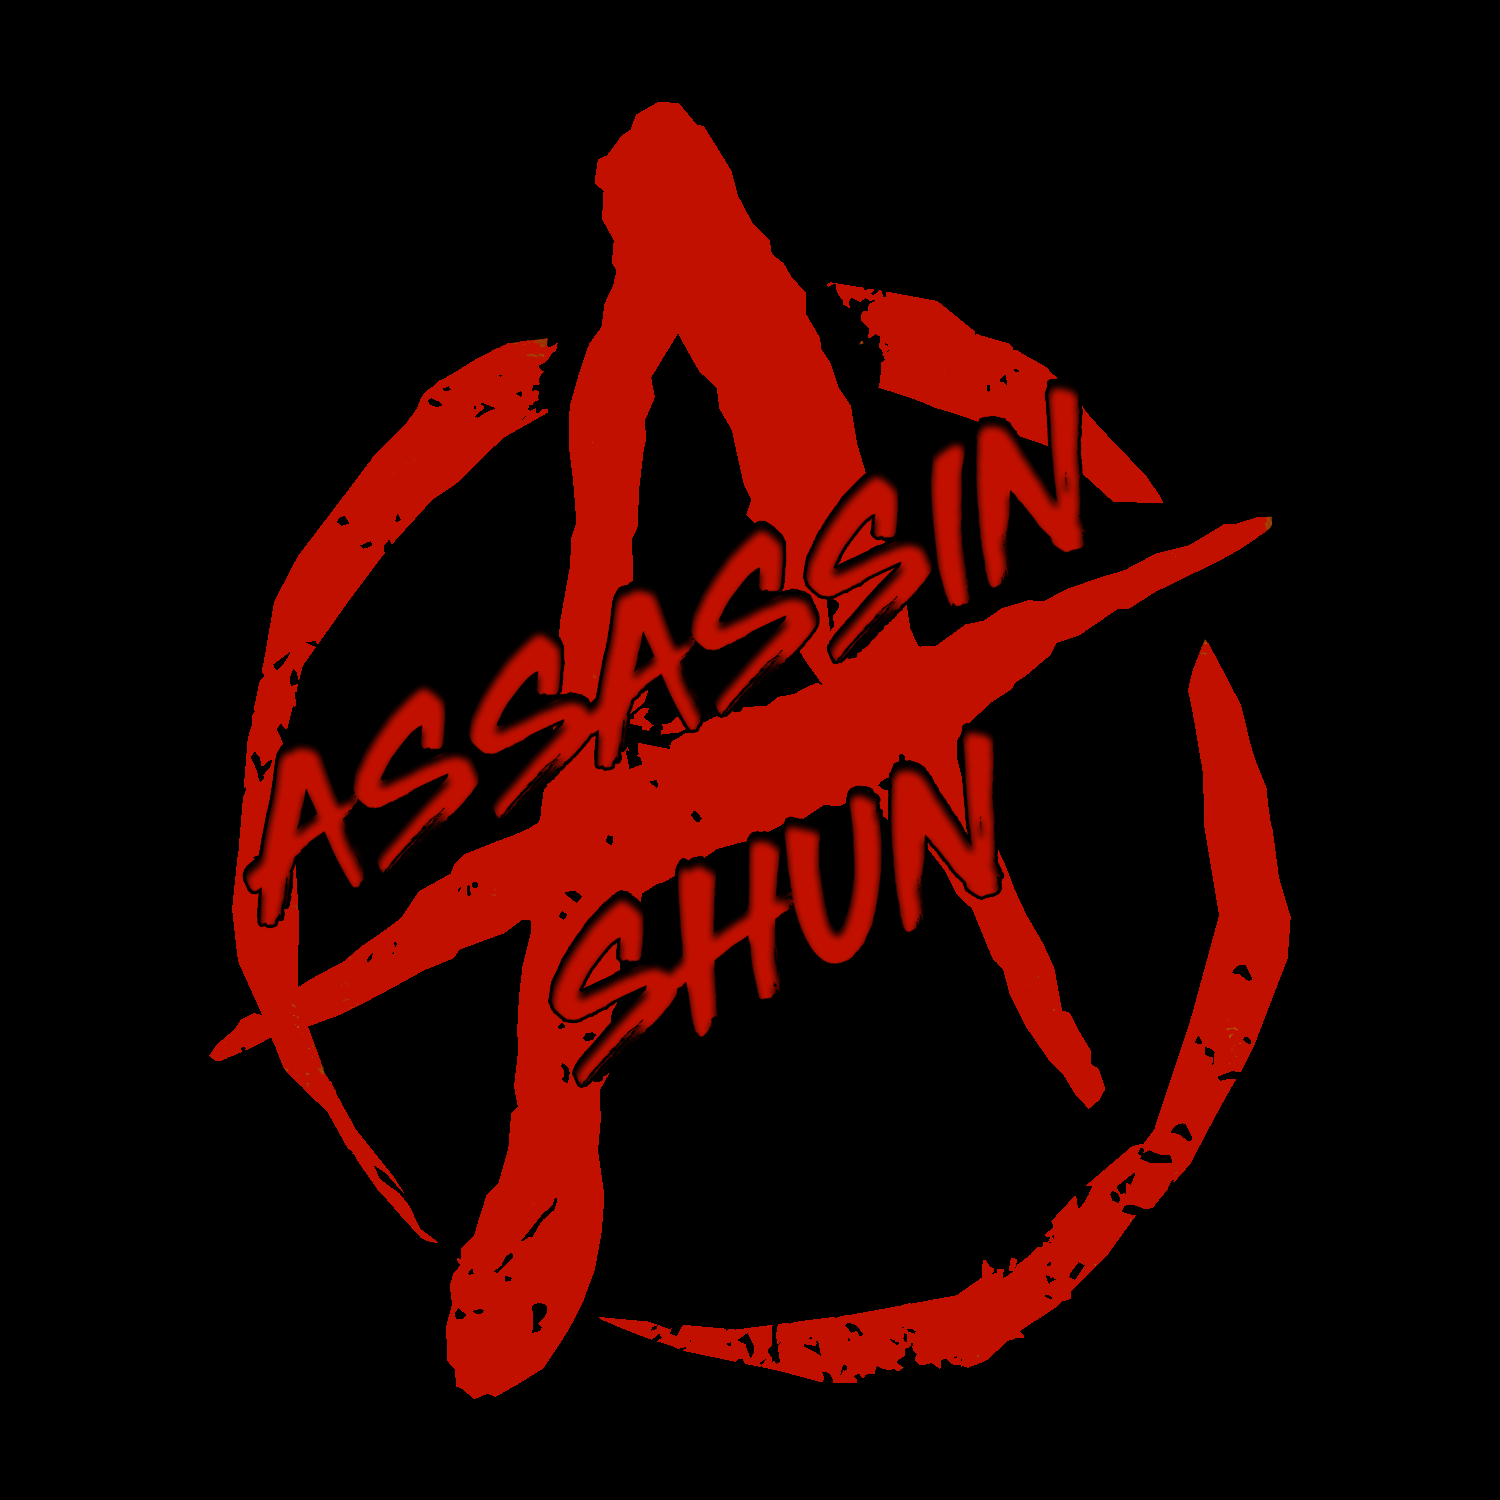 StreamElements - assassinshun